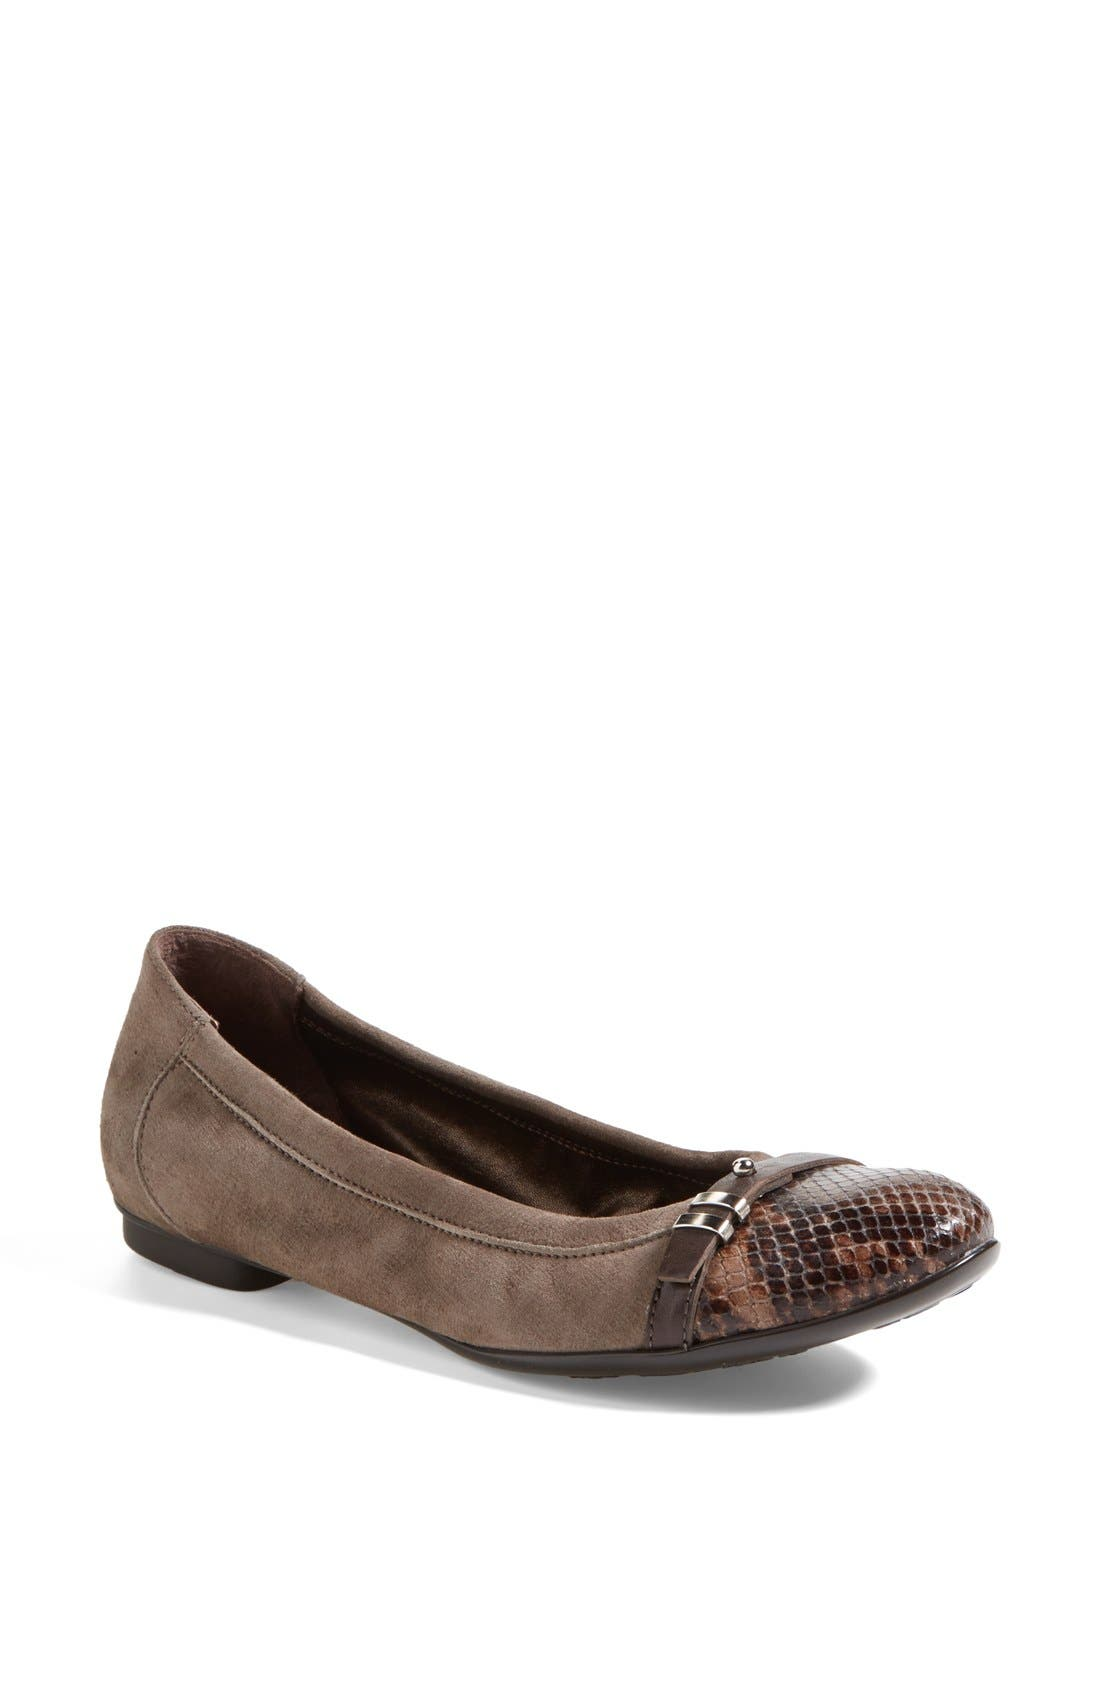 Alternate Image 1 Selected - Attilio Giusti Leombruni 'Bella' Patent & Nappa Leather Ballet Flat